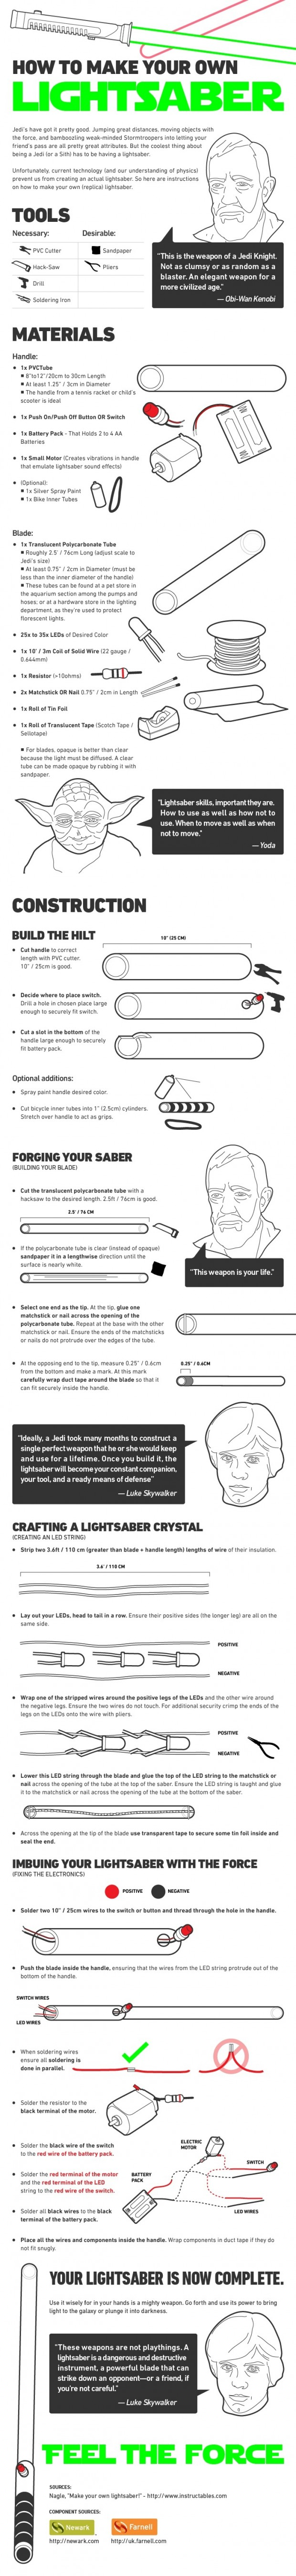 make-your-own-lightsaber